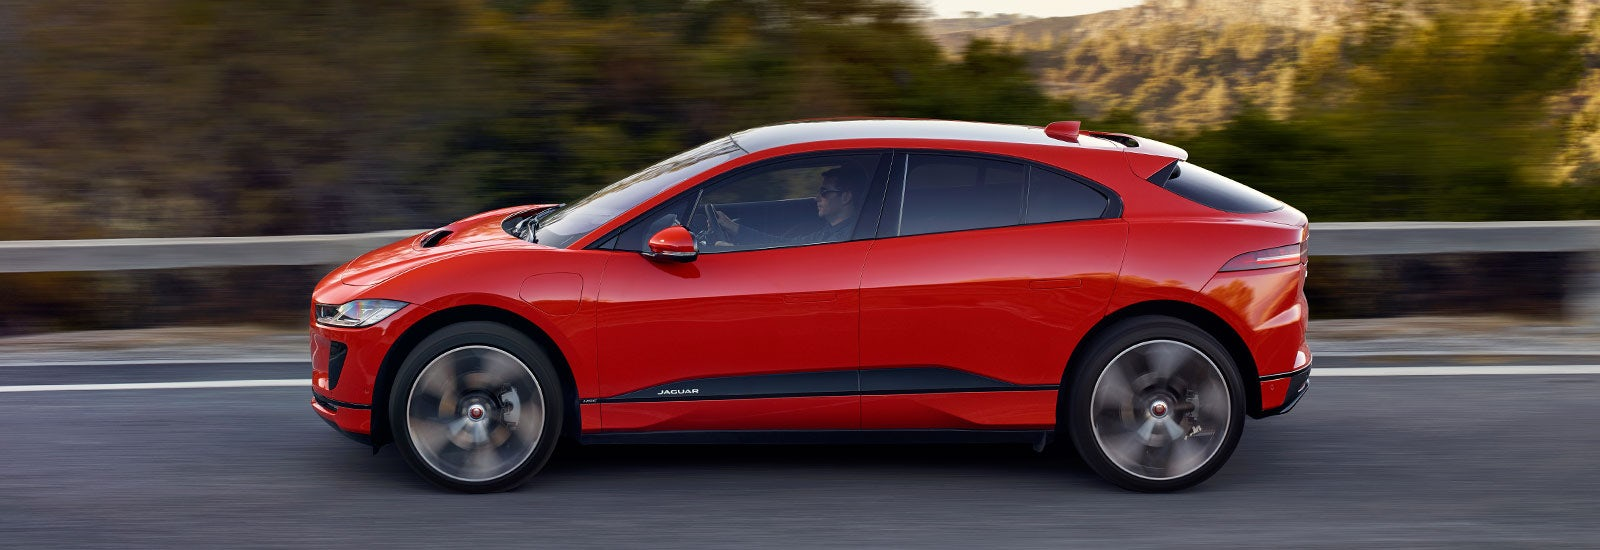 2018 jaguar i pace electric suv price specs and release date carwow. Black Bedroom Furniture Sets. Home Design Ideas